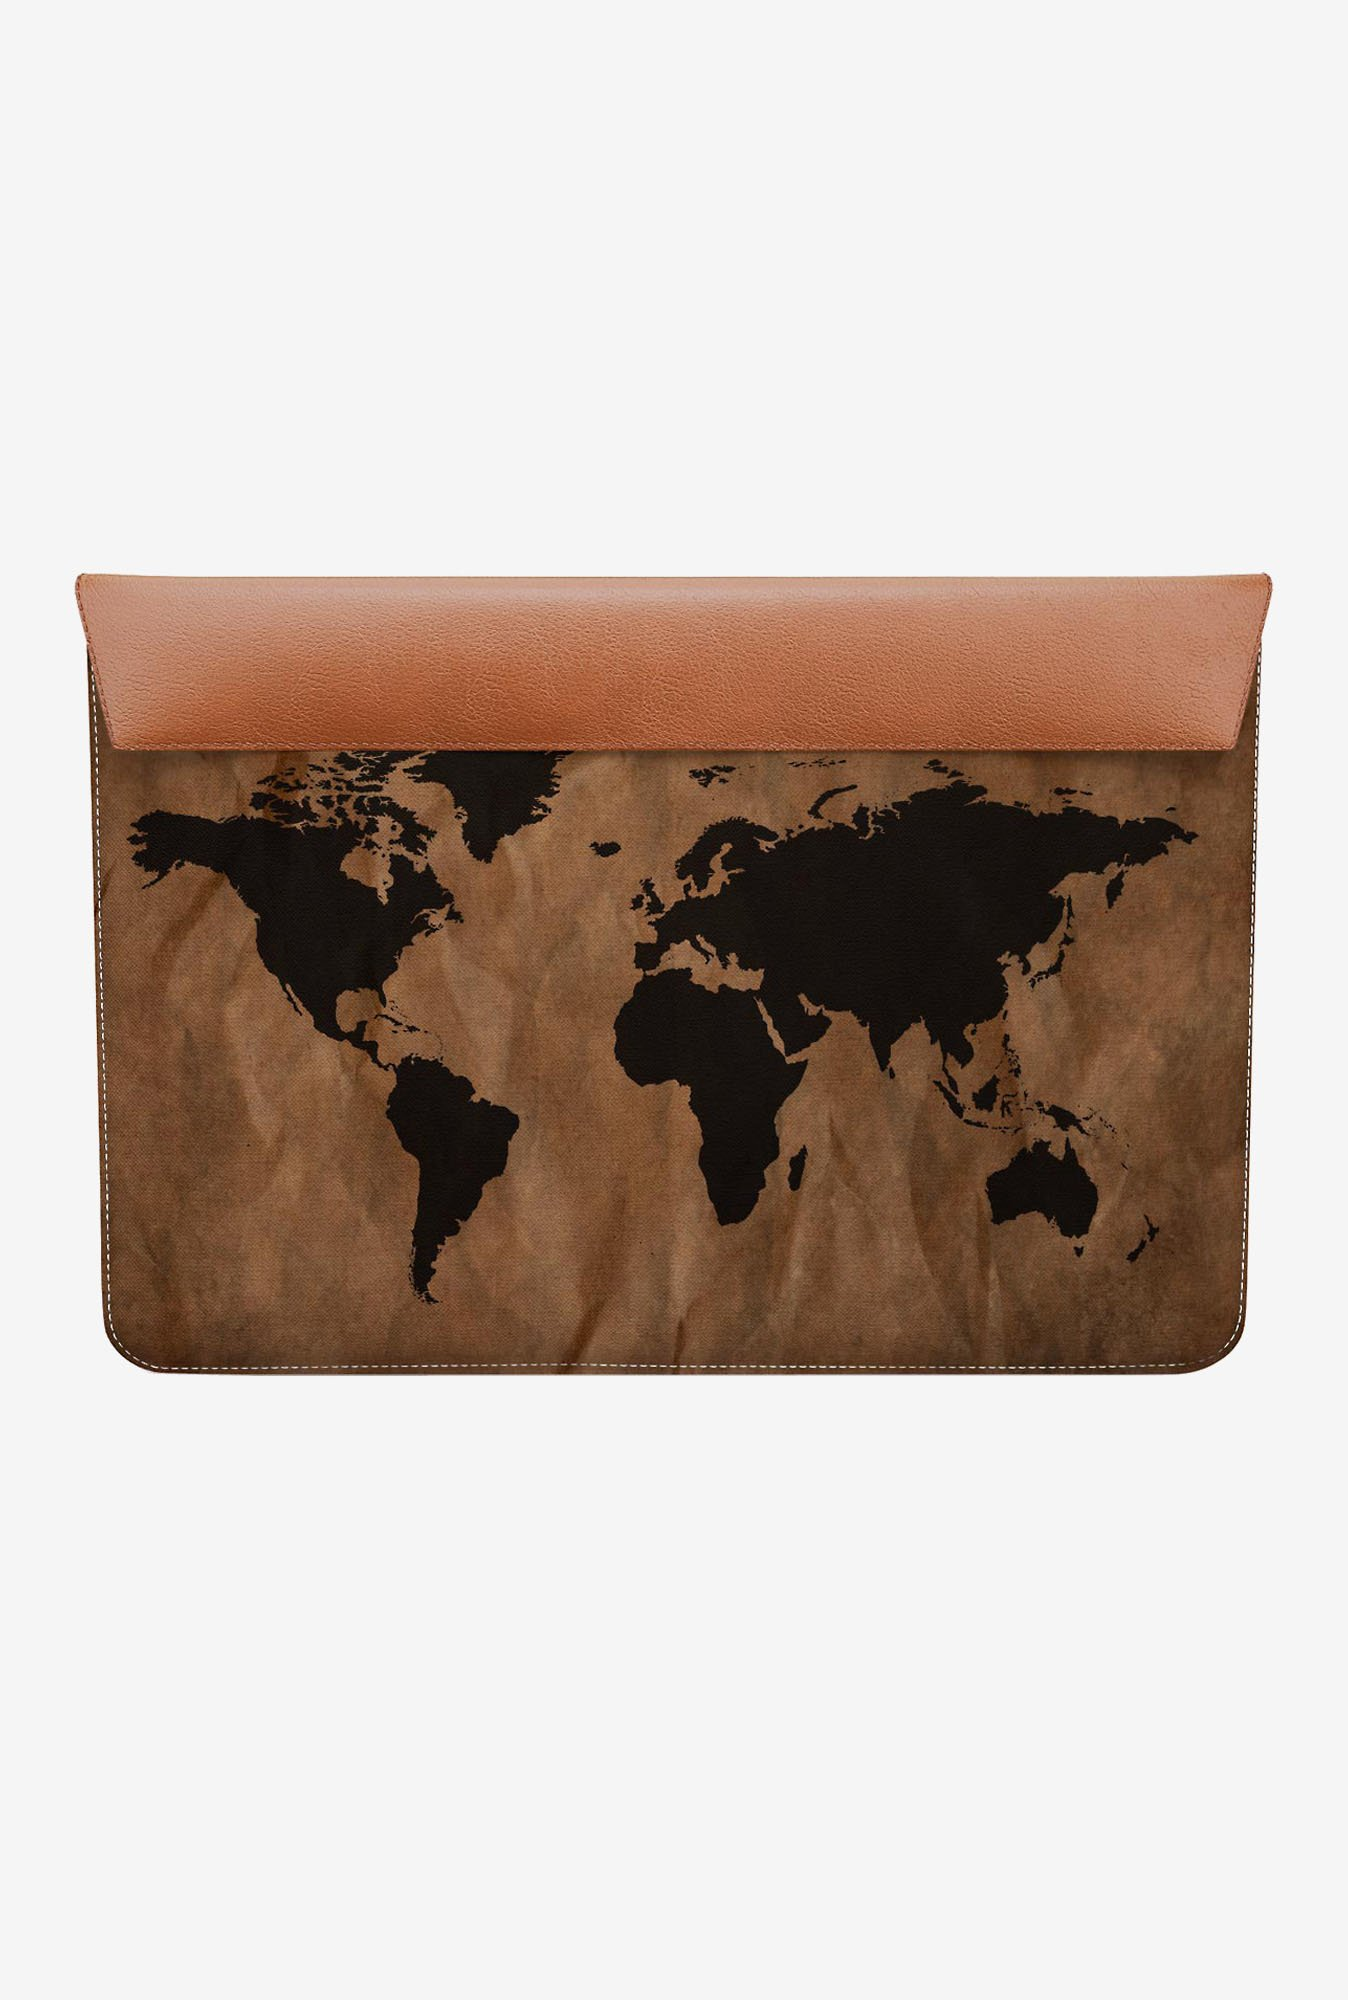 DailyObjects World Map MacBook 12 Envelope Sleeve